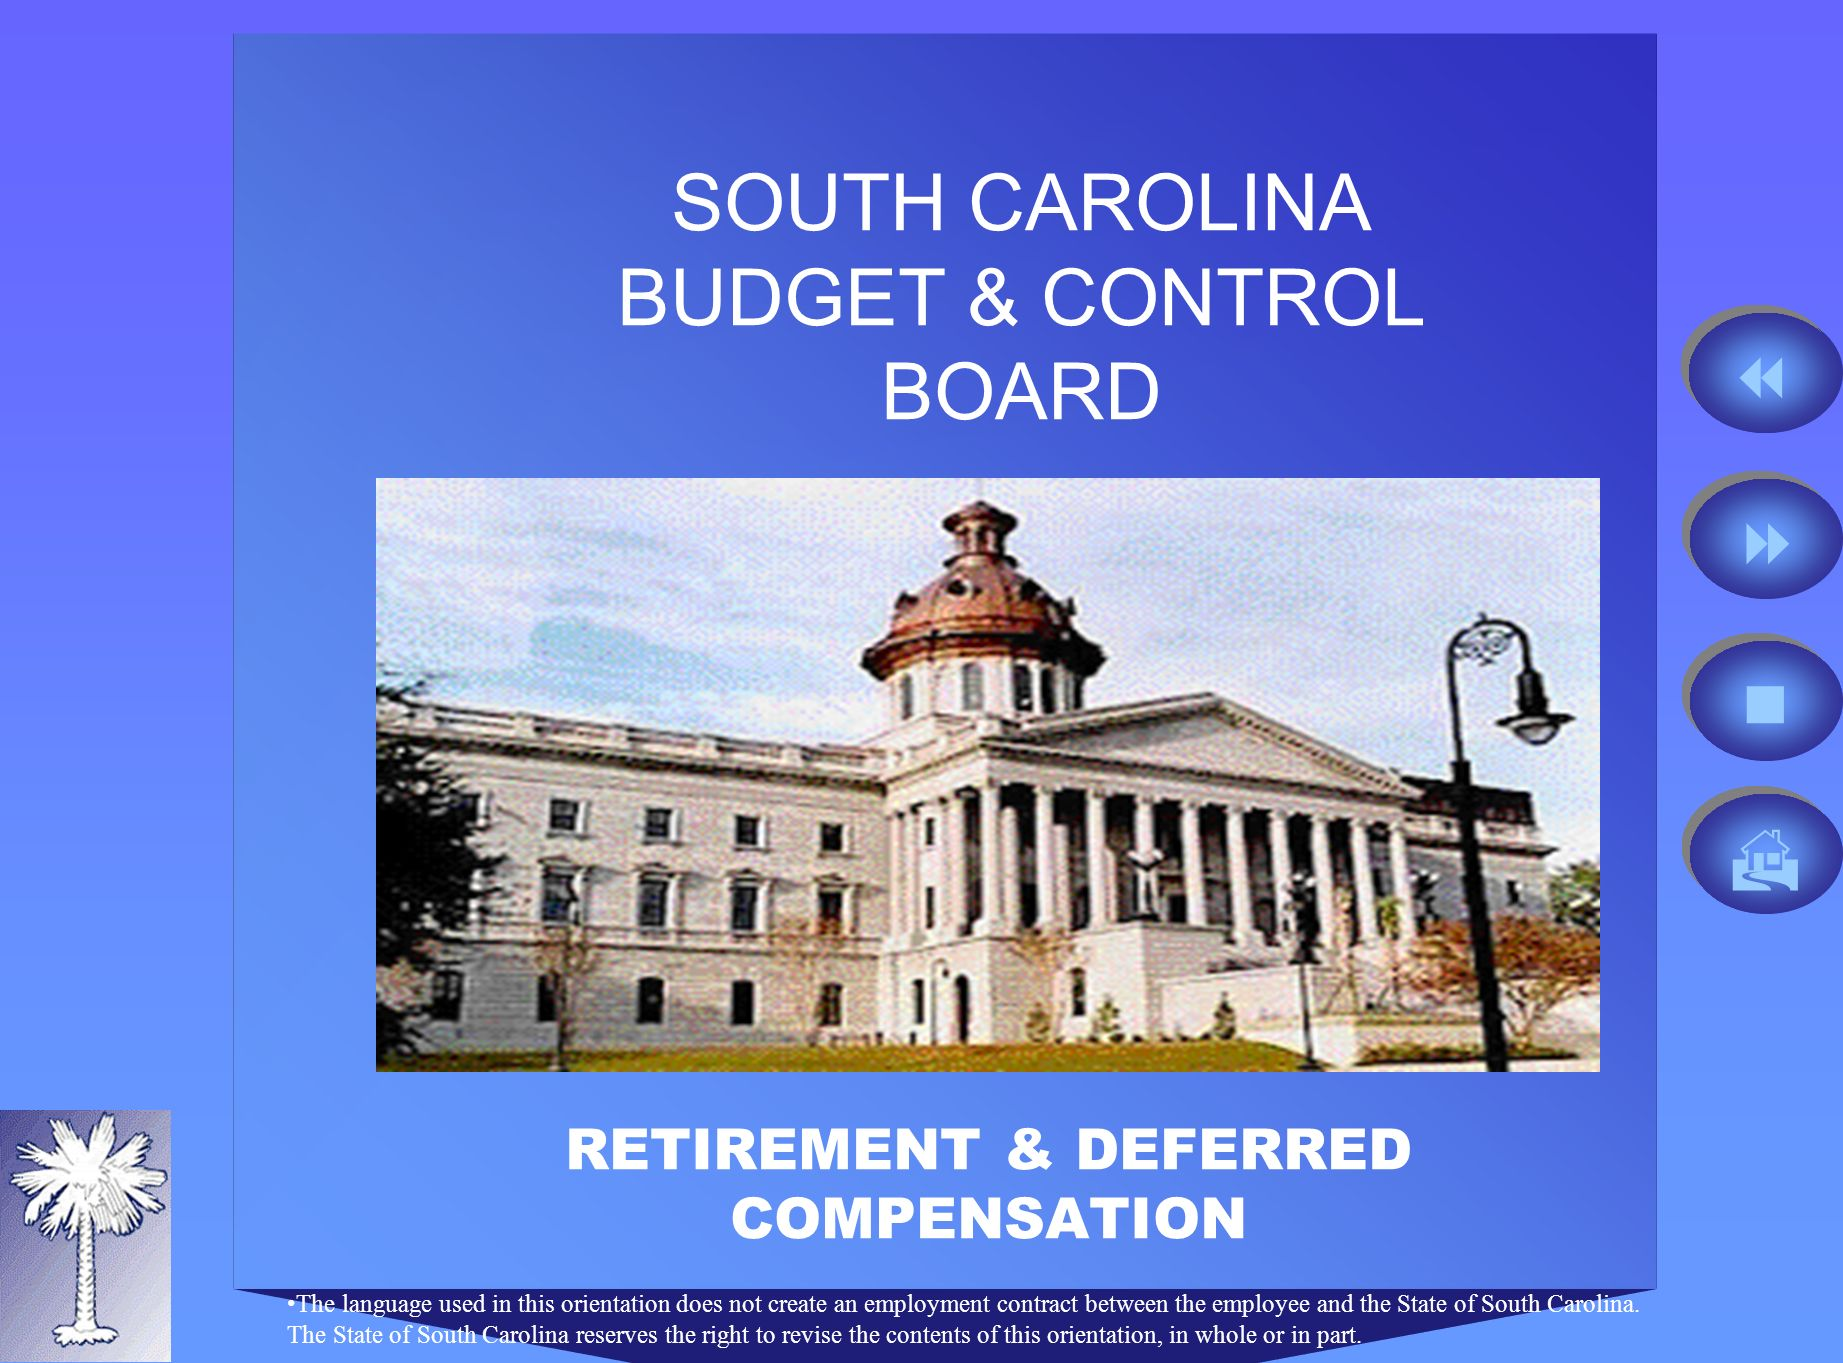 SOUTH CAROLINA BUDGET & CONTROL BOARD RETIREMENT & DEFERRED COMPENSATION The language used in this orientation does not create an employment contract between the employee and the State of South Carolina.